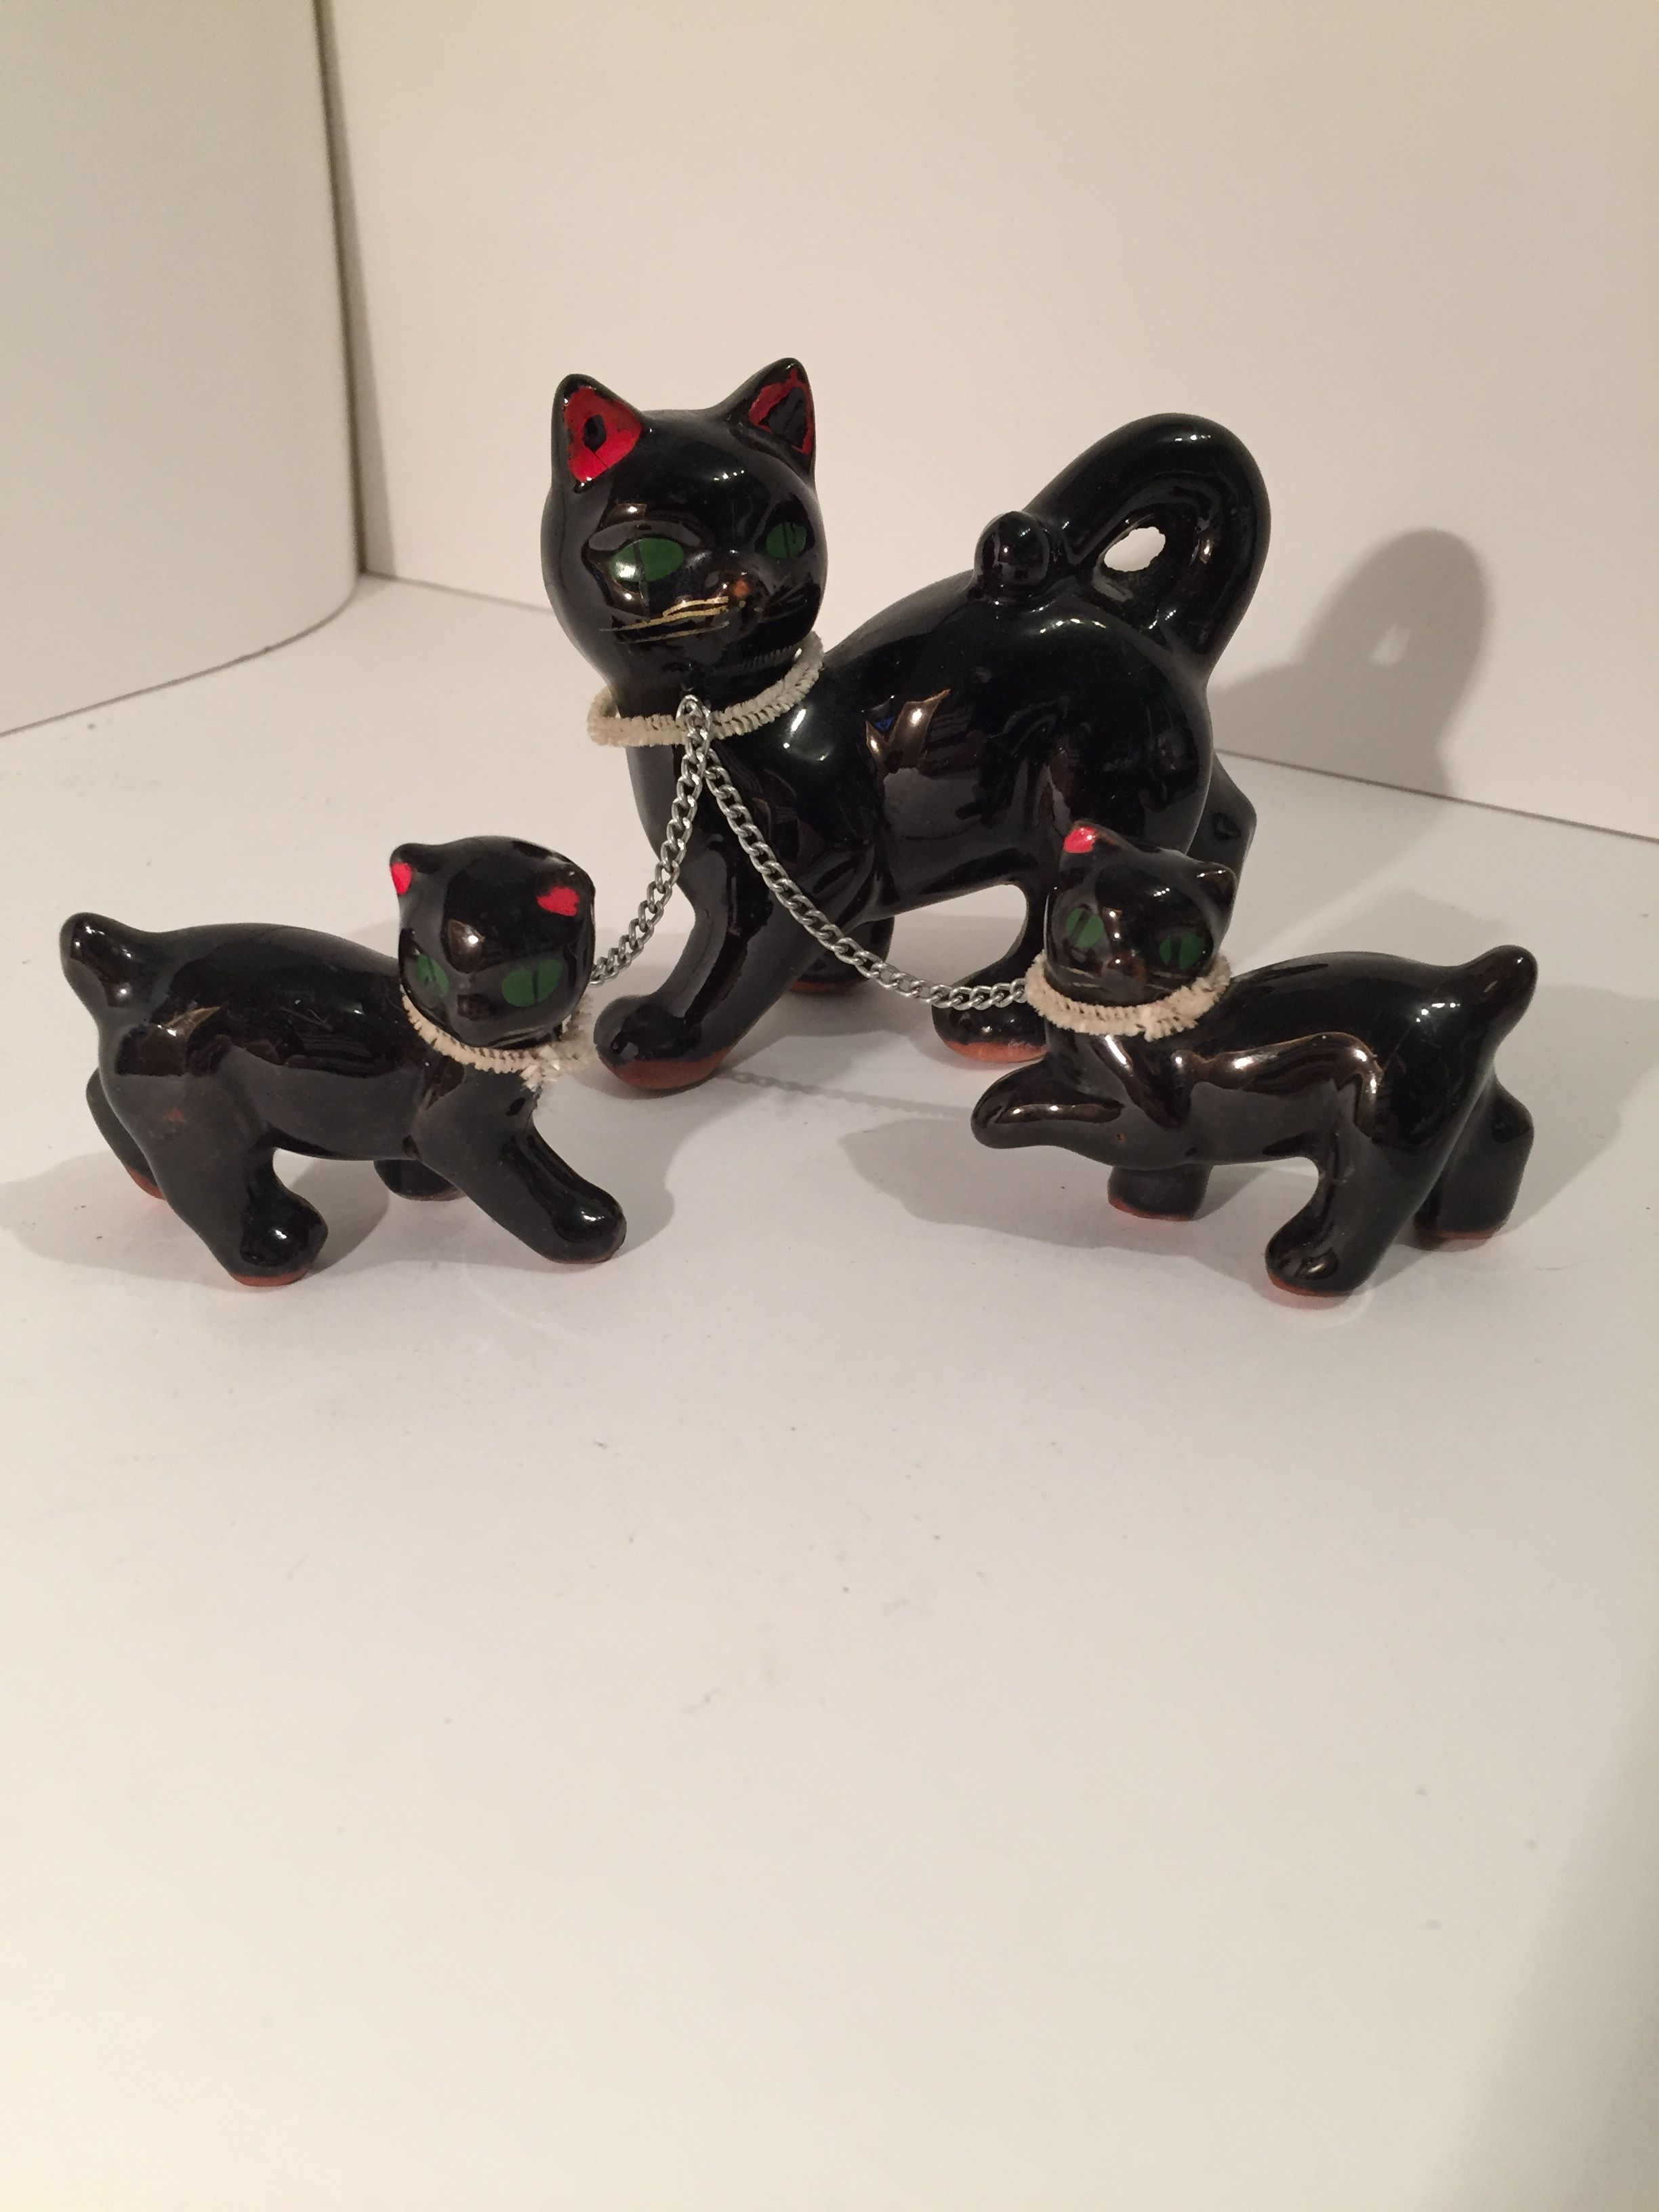 Collectible Cats, vintage 50s, high glazed brown with red